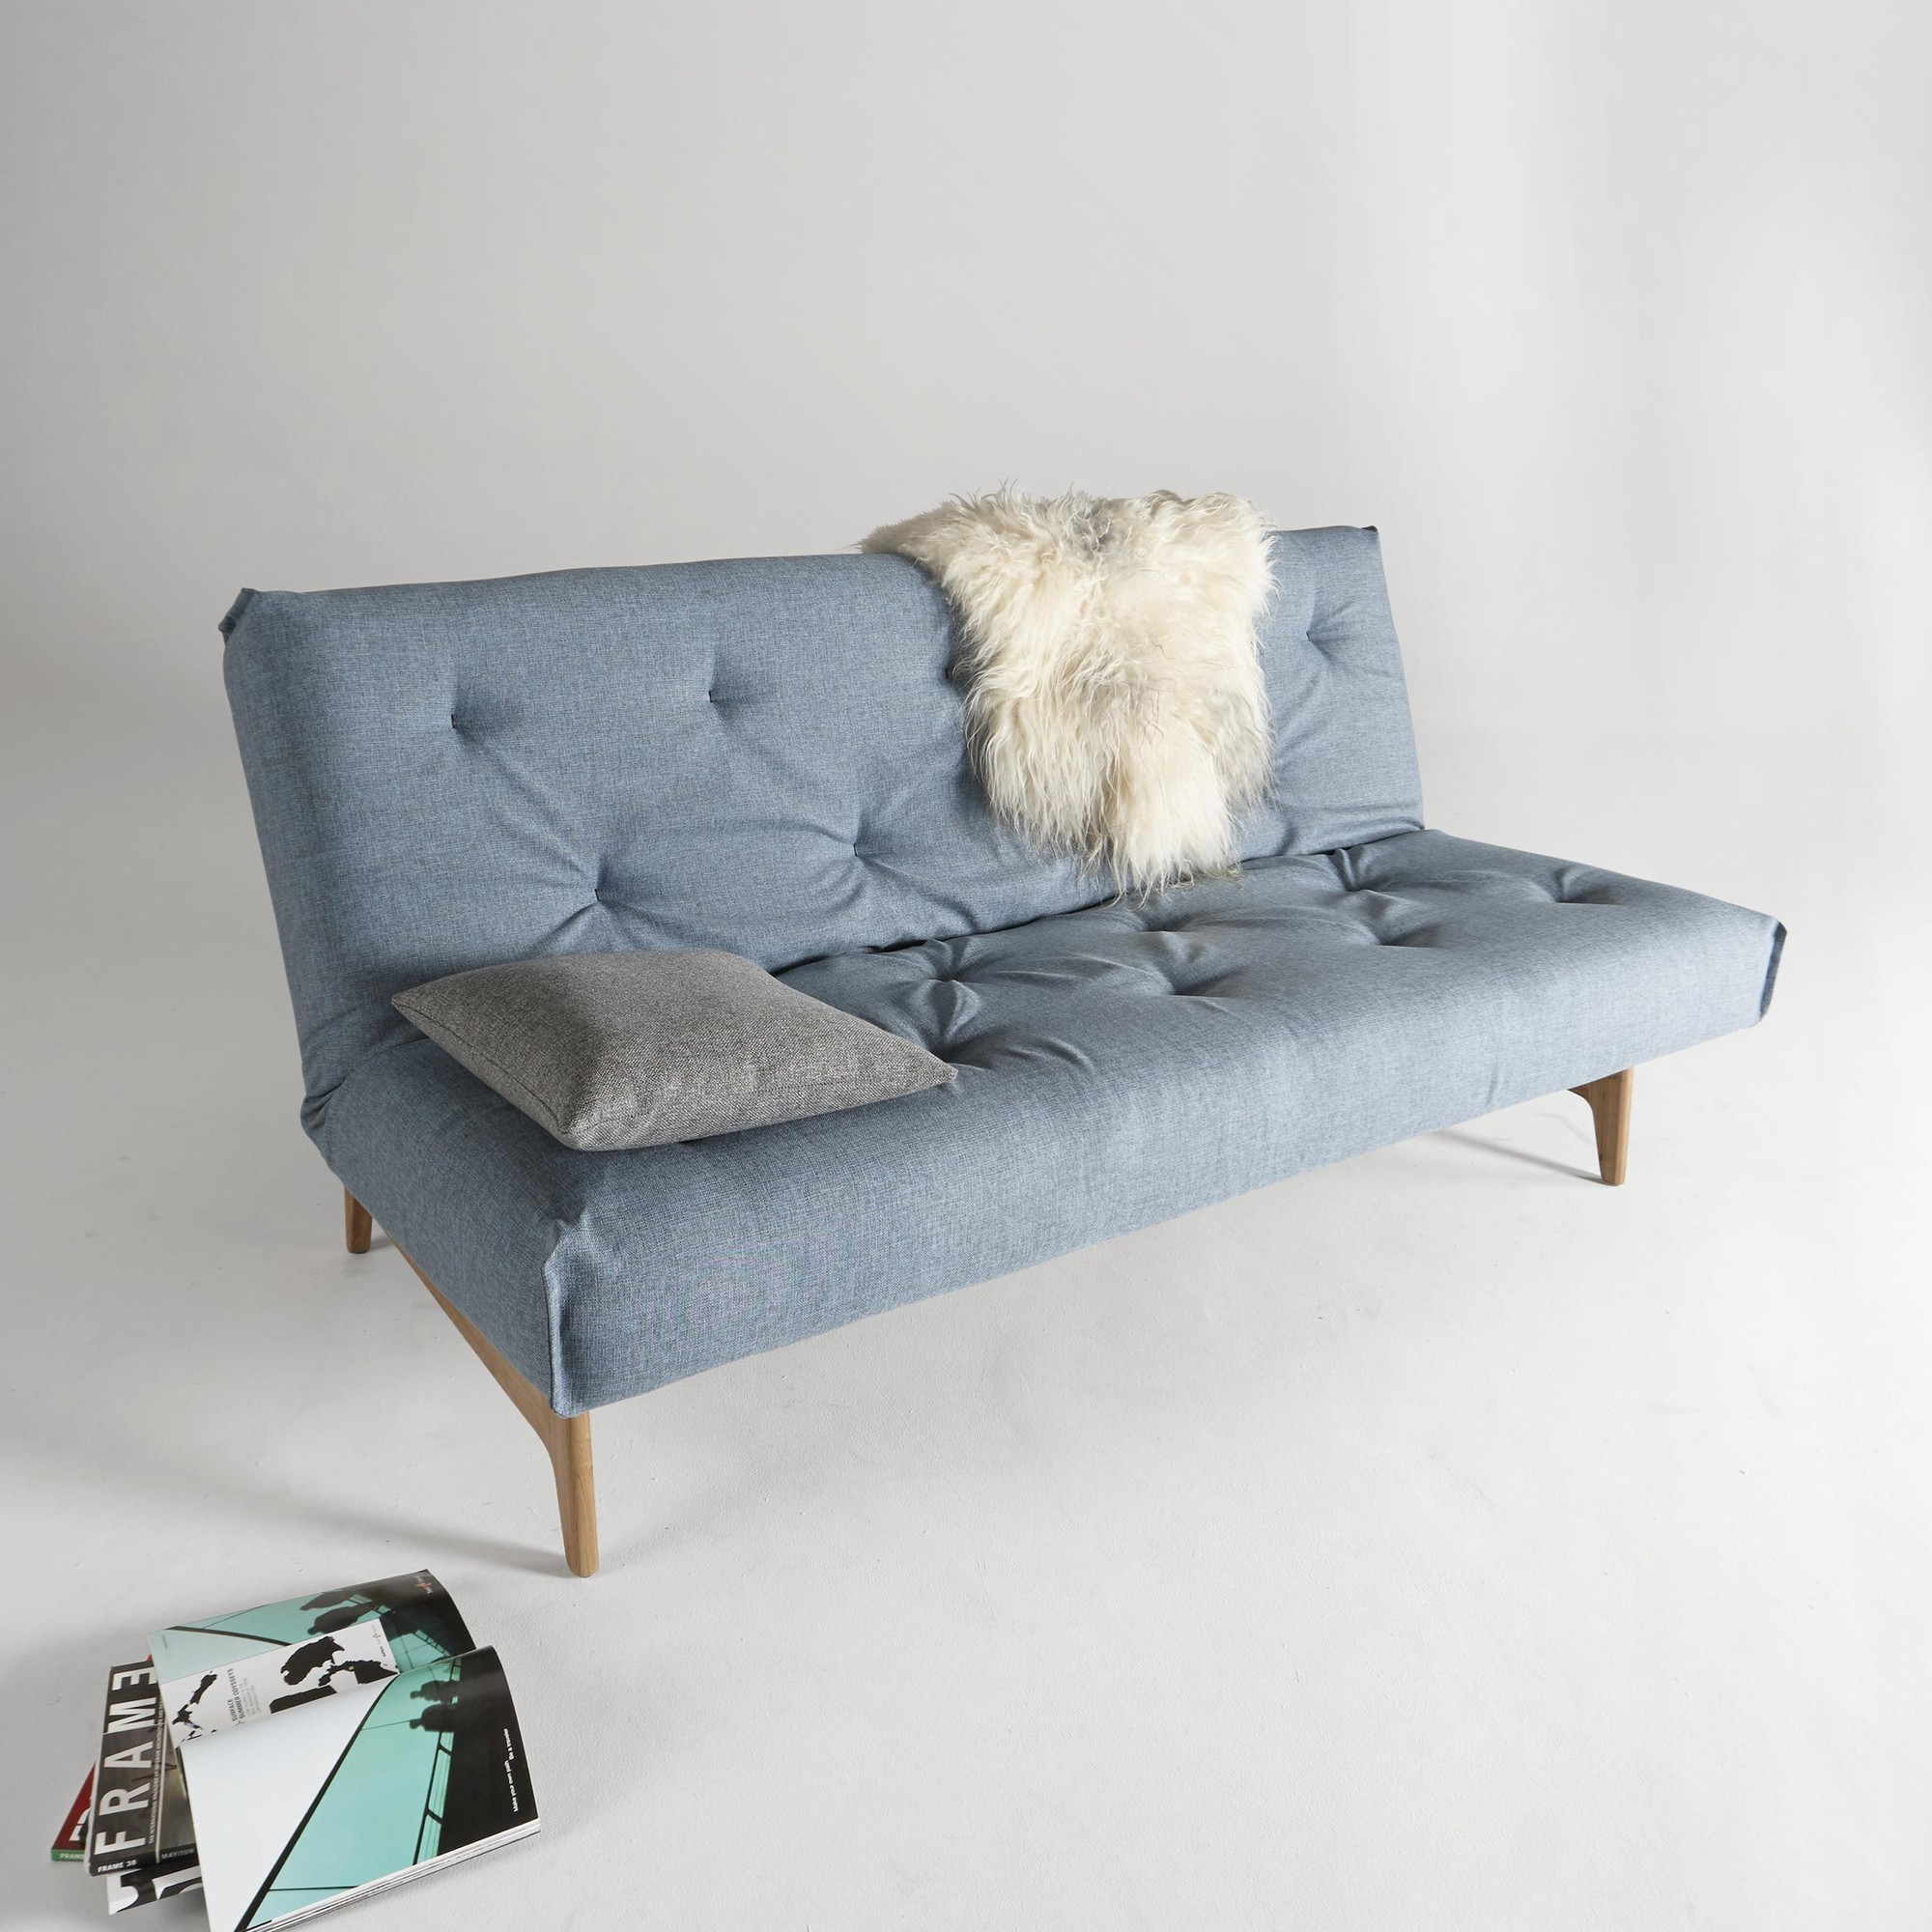 Schlafsofa 140 Innovation Aslak 140 Schlafsofa 200x81cm | Ambientedirect